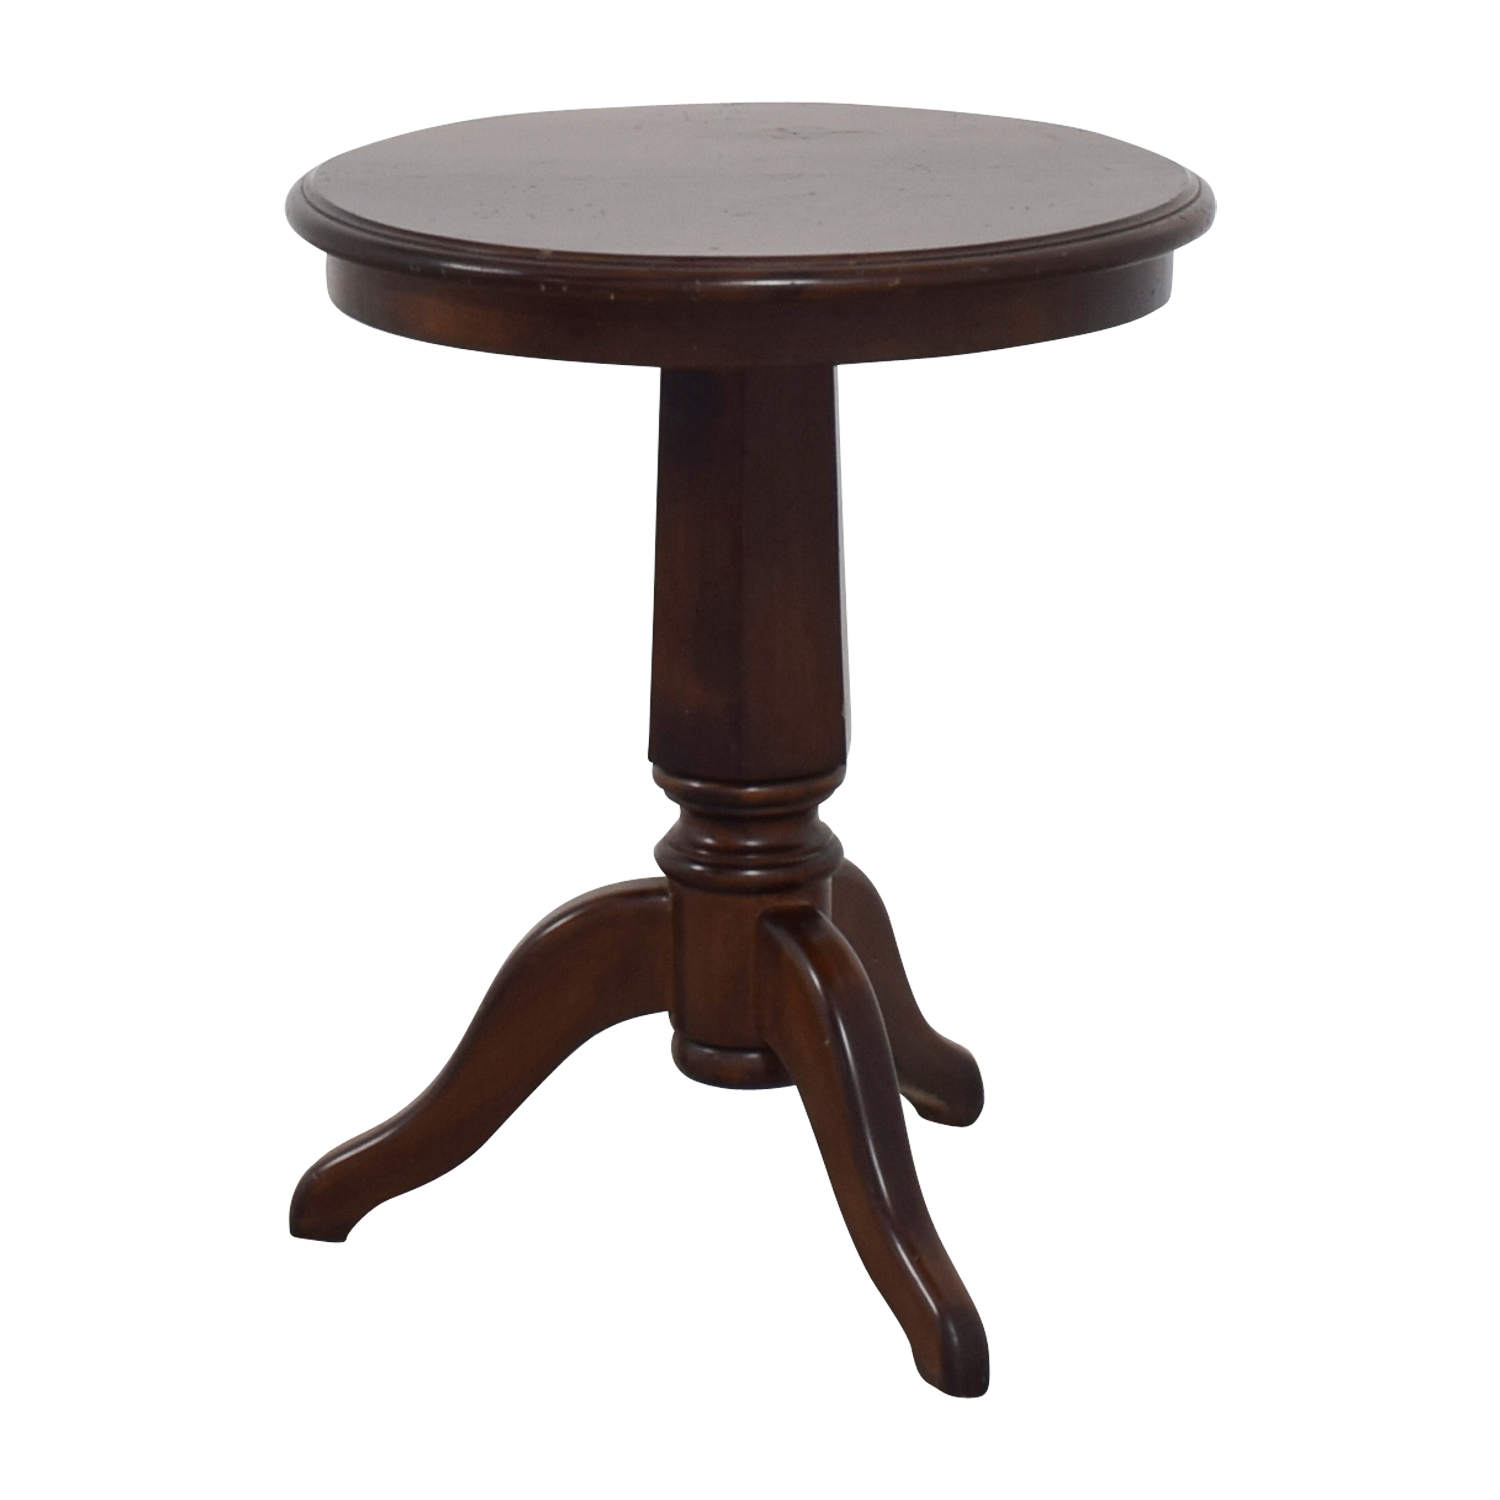 Furniture Masters Round Wooden End Table Chocolate